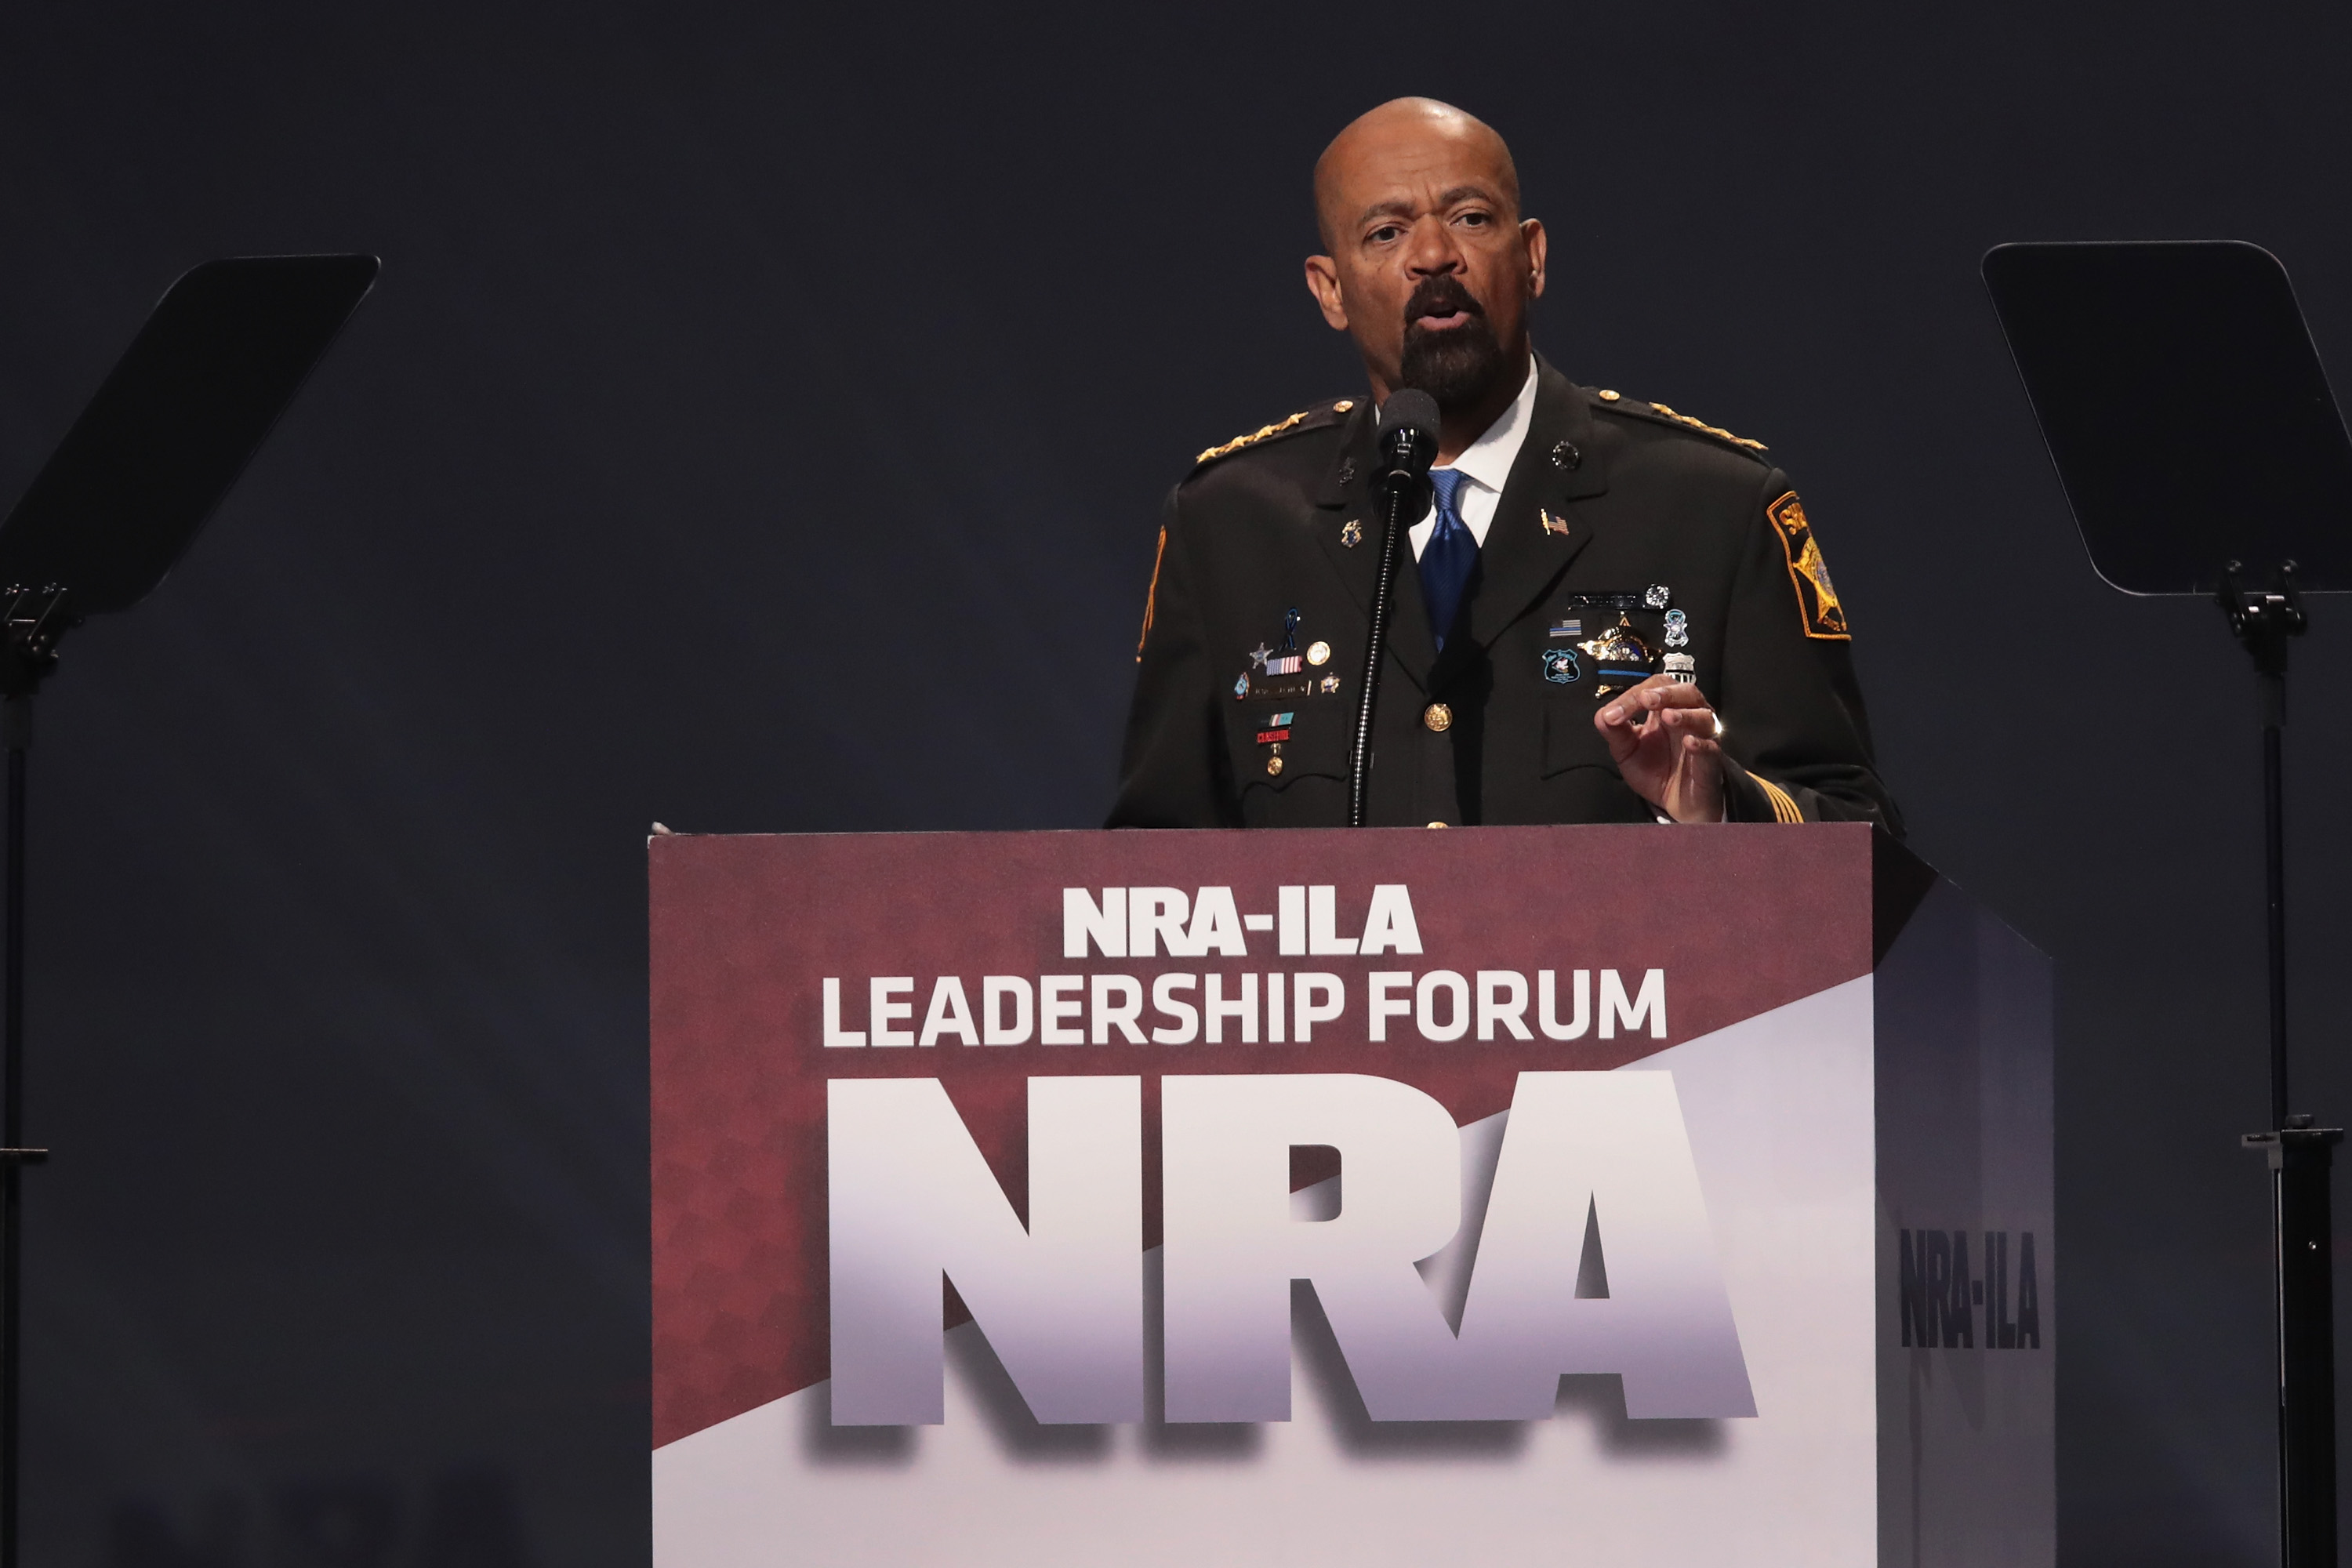 David Clarke Jr., sheriff of Milwaukee County, Wisconsin, speaks at the NRA-ILA's Leadership Forum at the 146th NRA Annual Meetings & Exhibits on April 28, 2017 in Atlanta, Georgia. The convention is the largest annual gathering for the NRA's more than 5 million members. (Photo by Scott Olson/Getty Images)